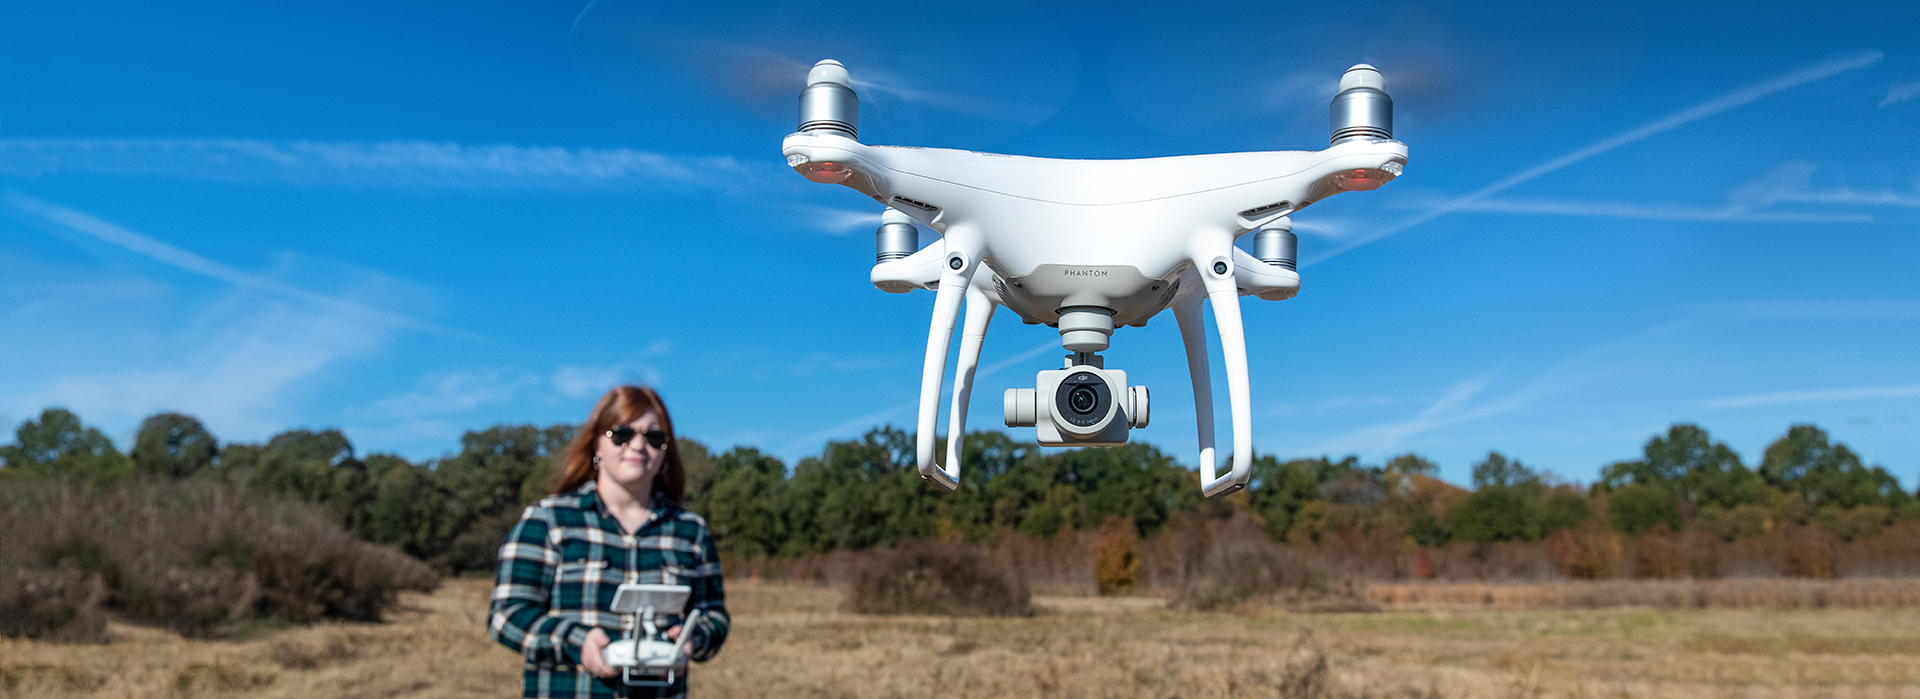 Stephanie Robinson licensed to fly drones banner ad